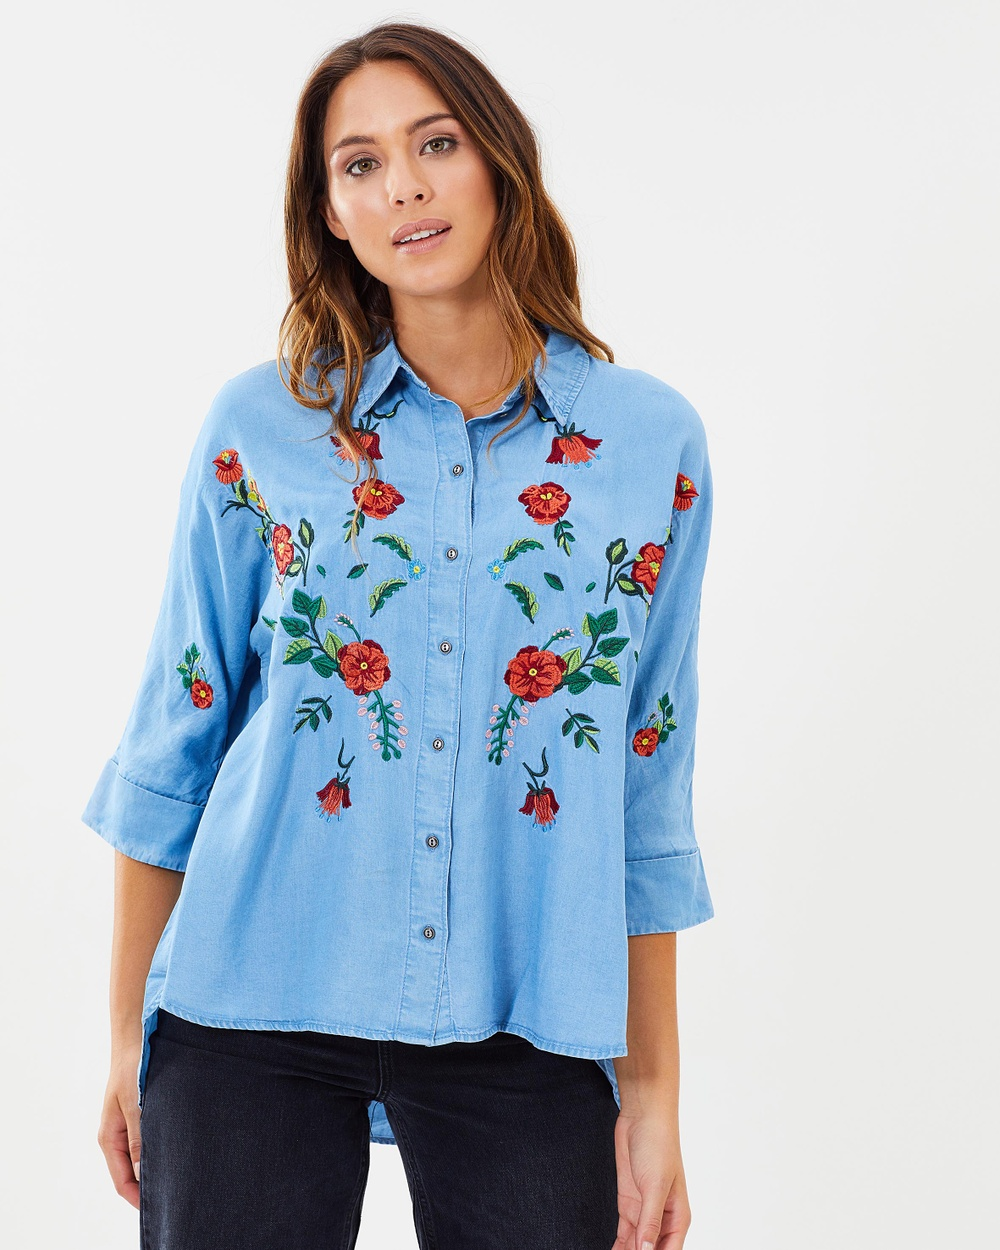 ONLY Grace Oversized Embellished Lyocell Denim Shirt Tops Light Blue Denim Grace Oversized Embellished Lyocell Denim Shirt